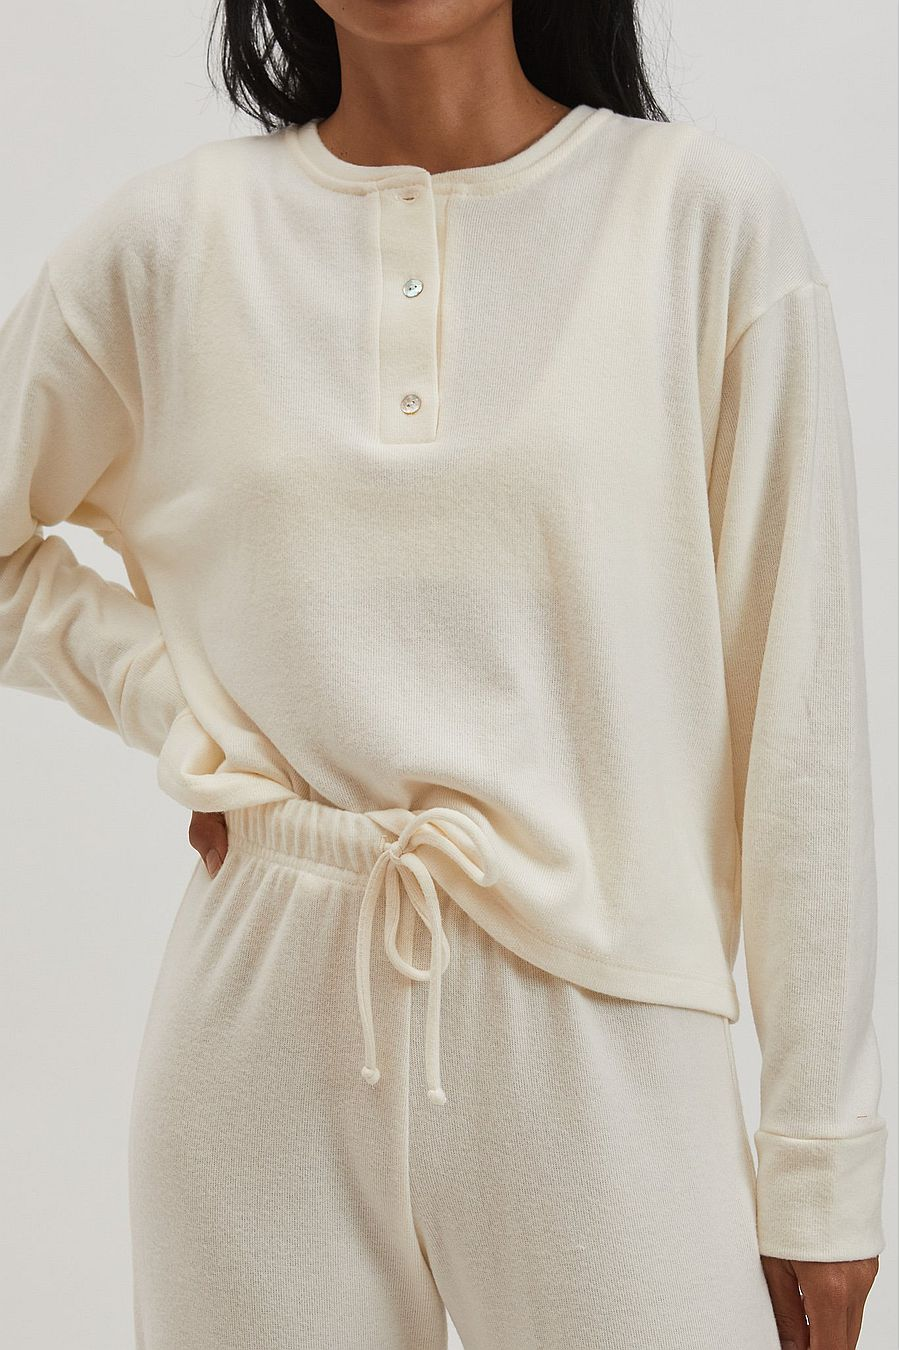 DONNI. Sweater Henley - Creme